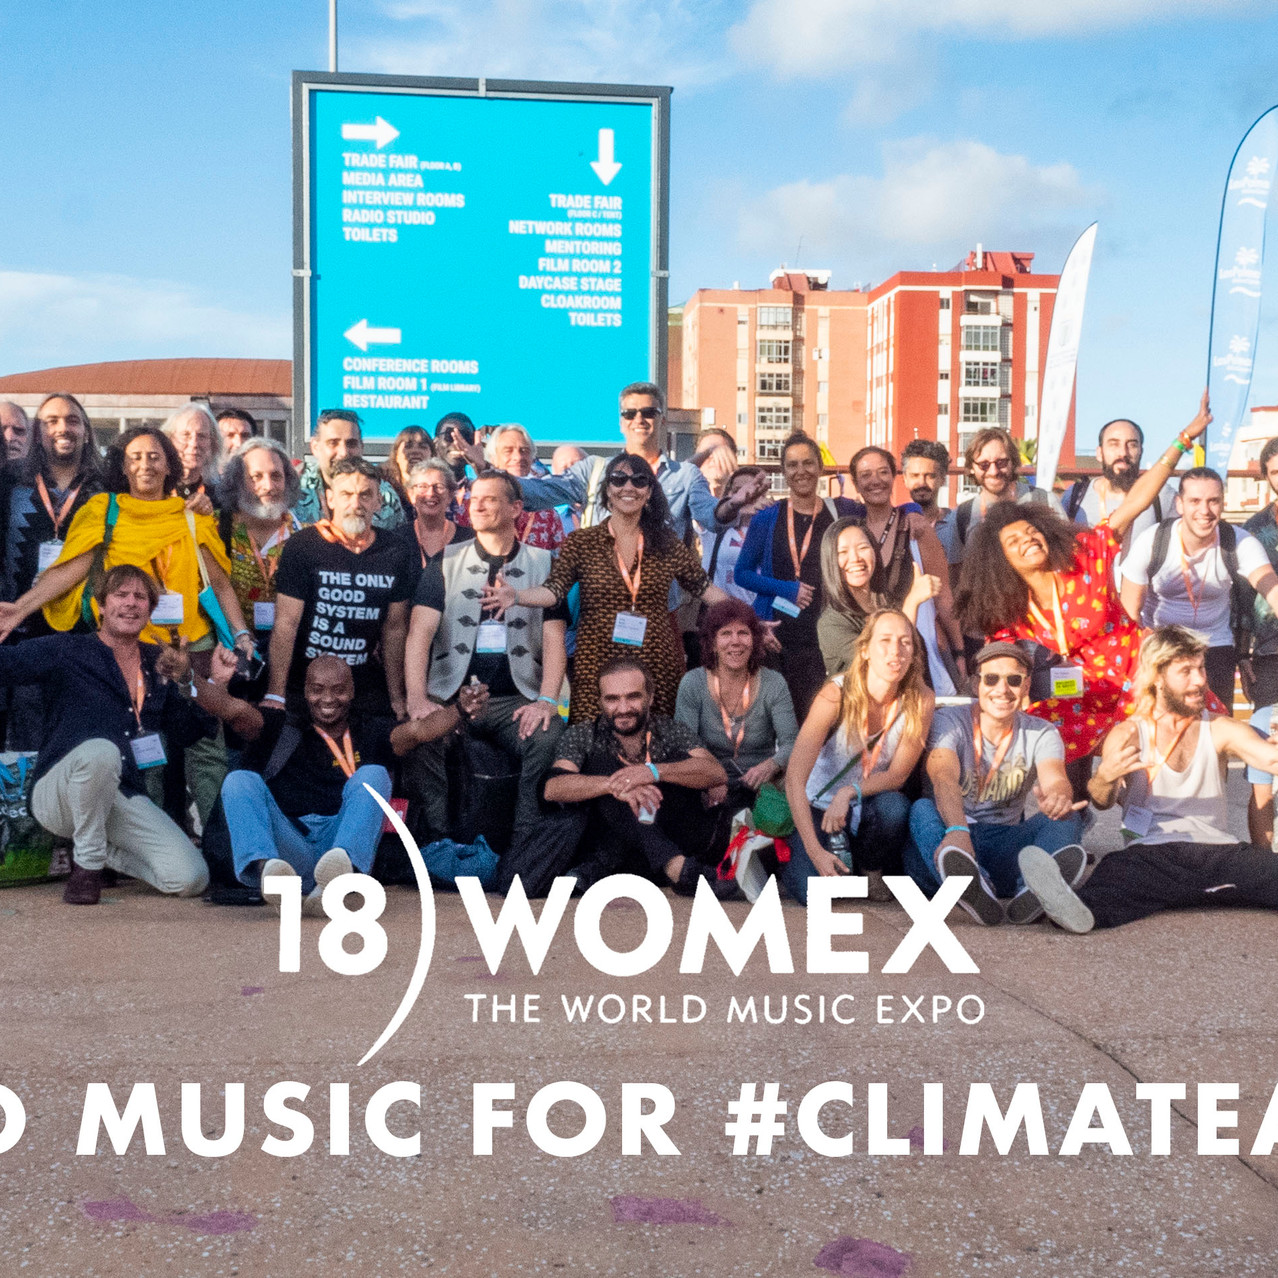 WORLD MUSIC FOR #CLIMATE ACTION Image by